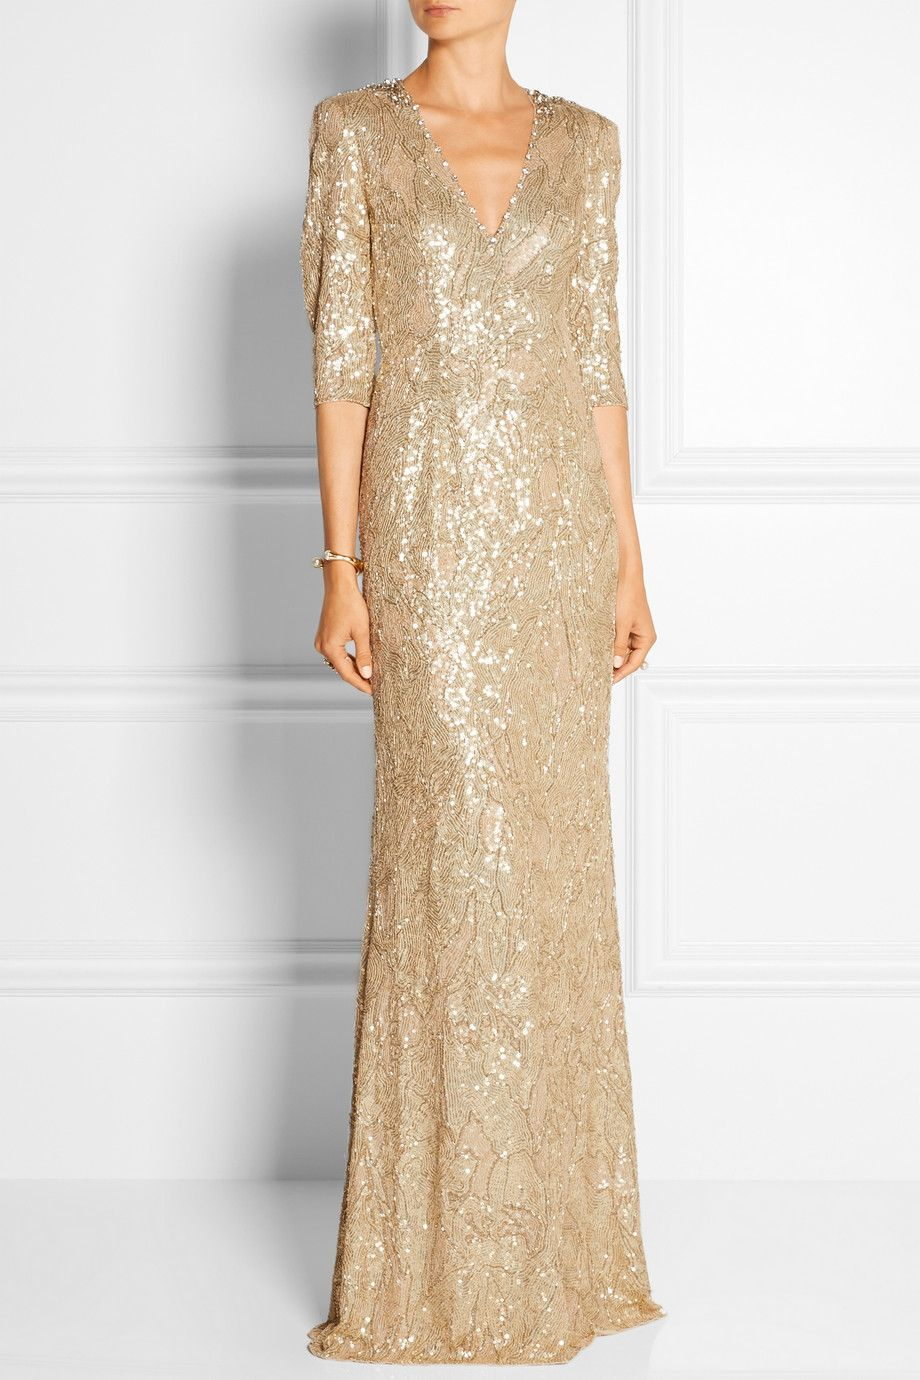 gold sequin wedding dress 20 Showstopping Sequin Wedding Dresses